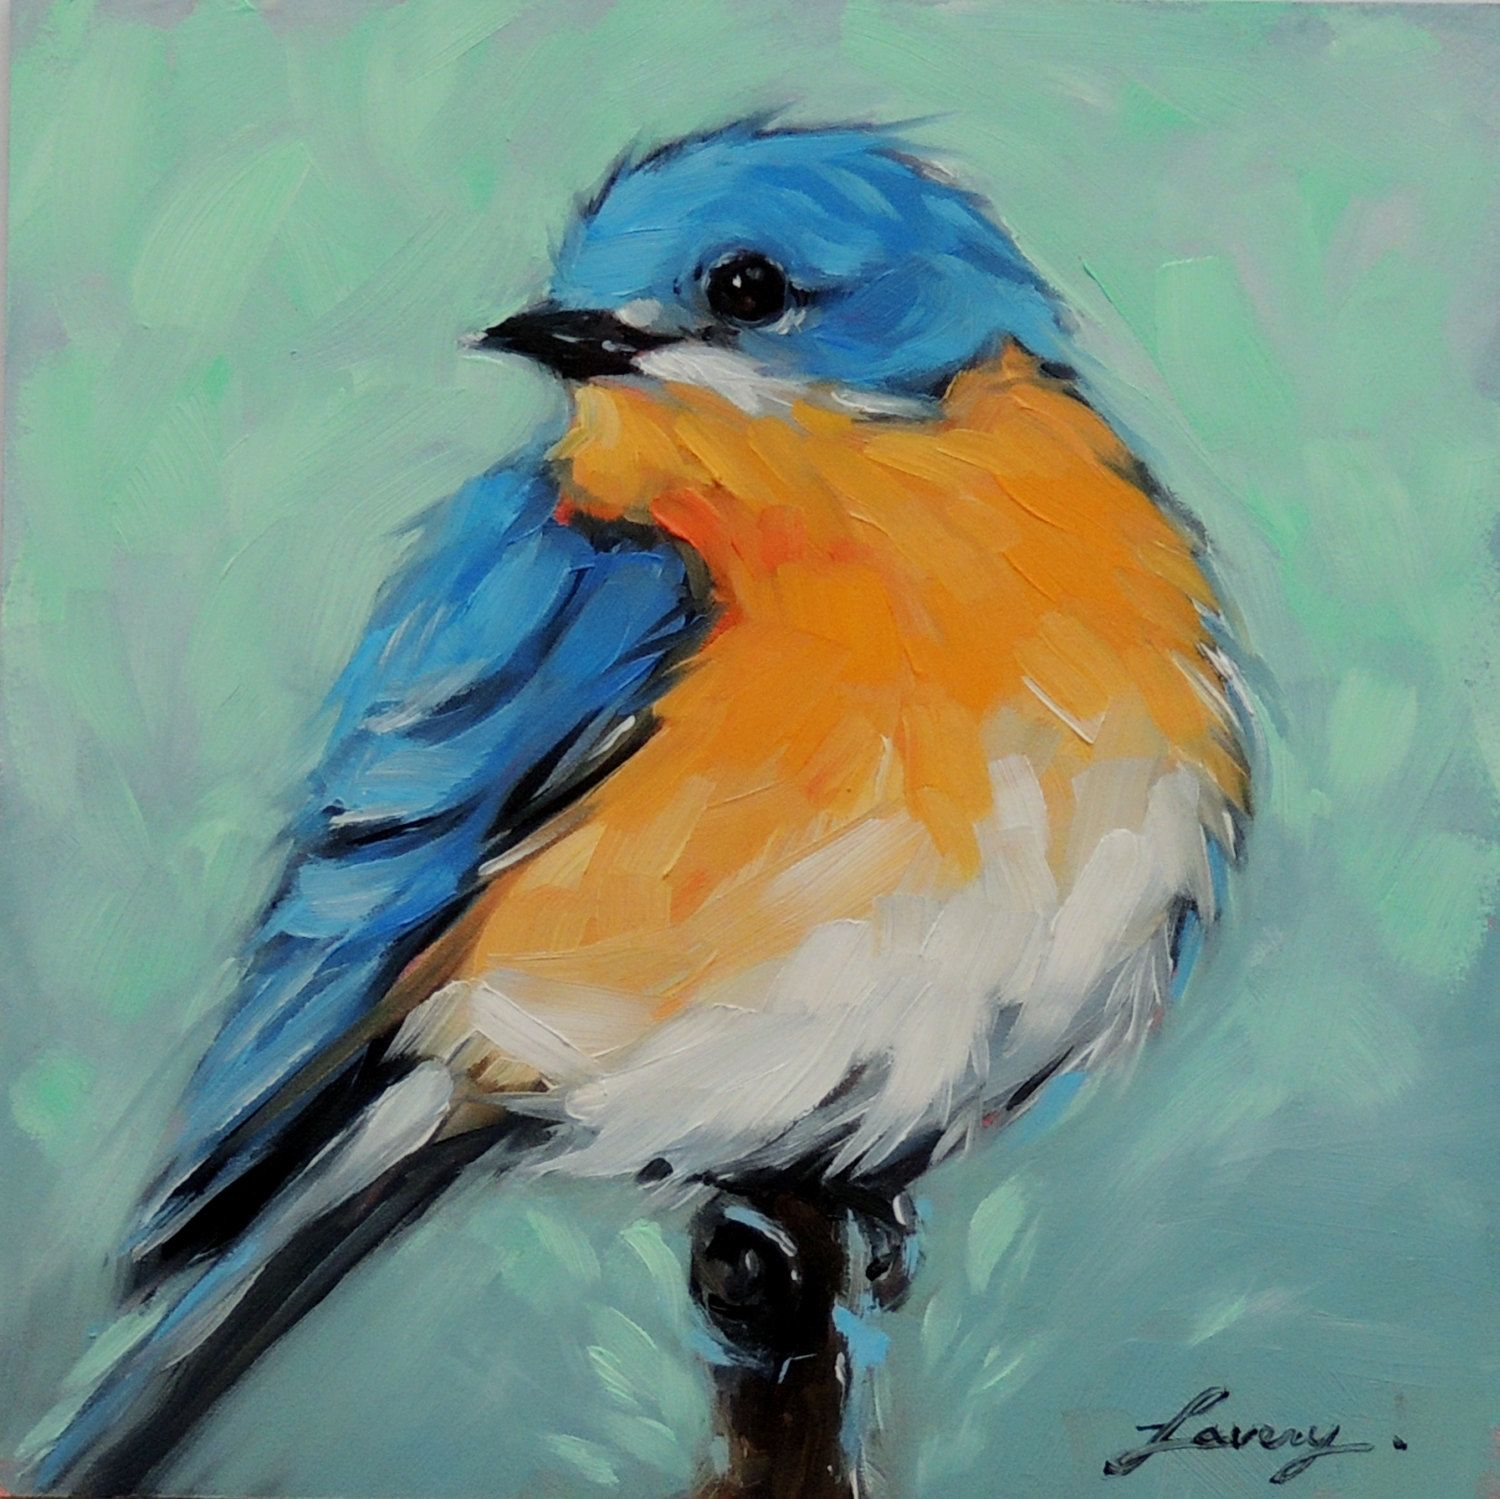 5x5 Original Oil Painting Of A Blubird On Gessobord Makes A